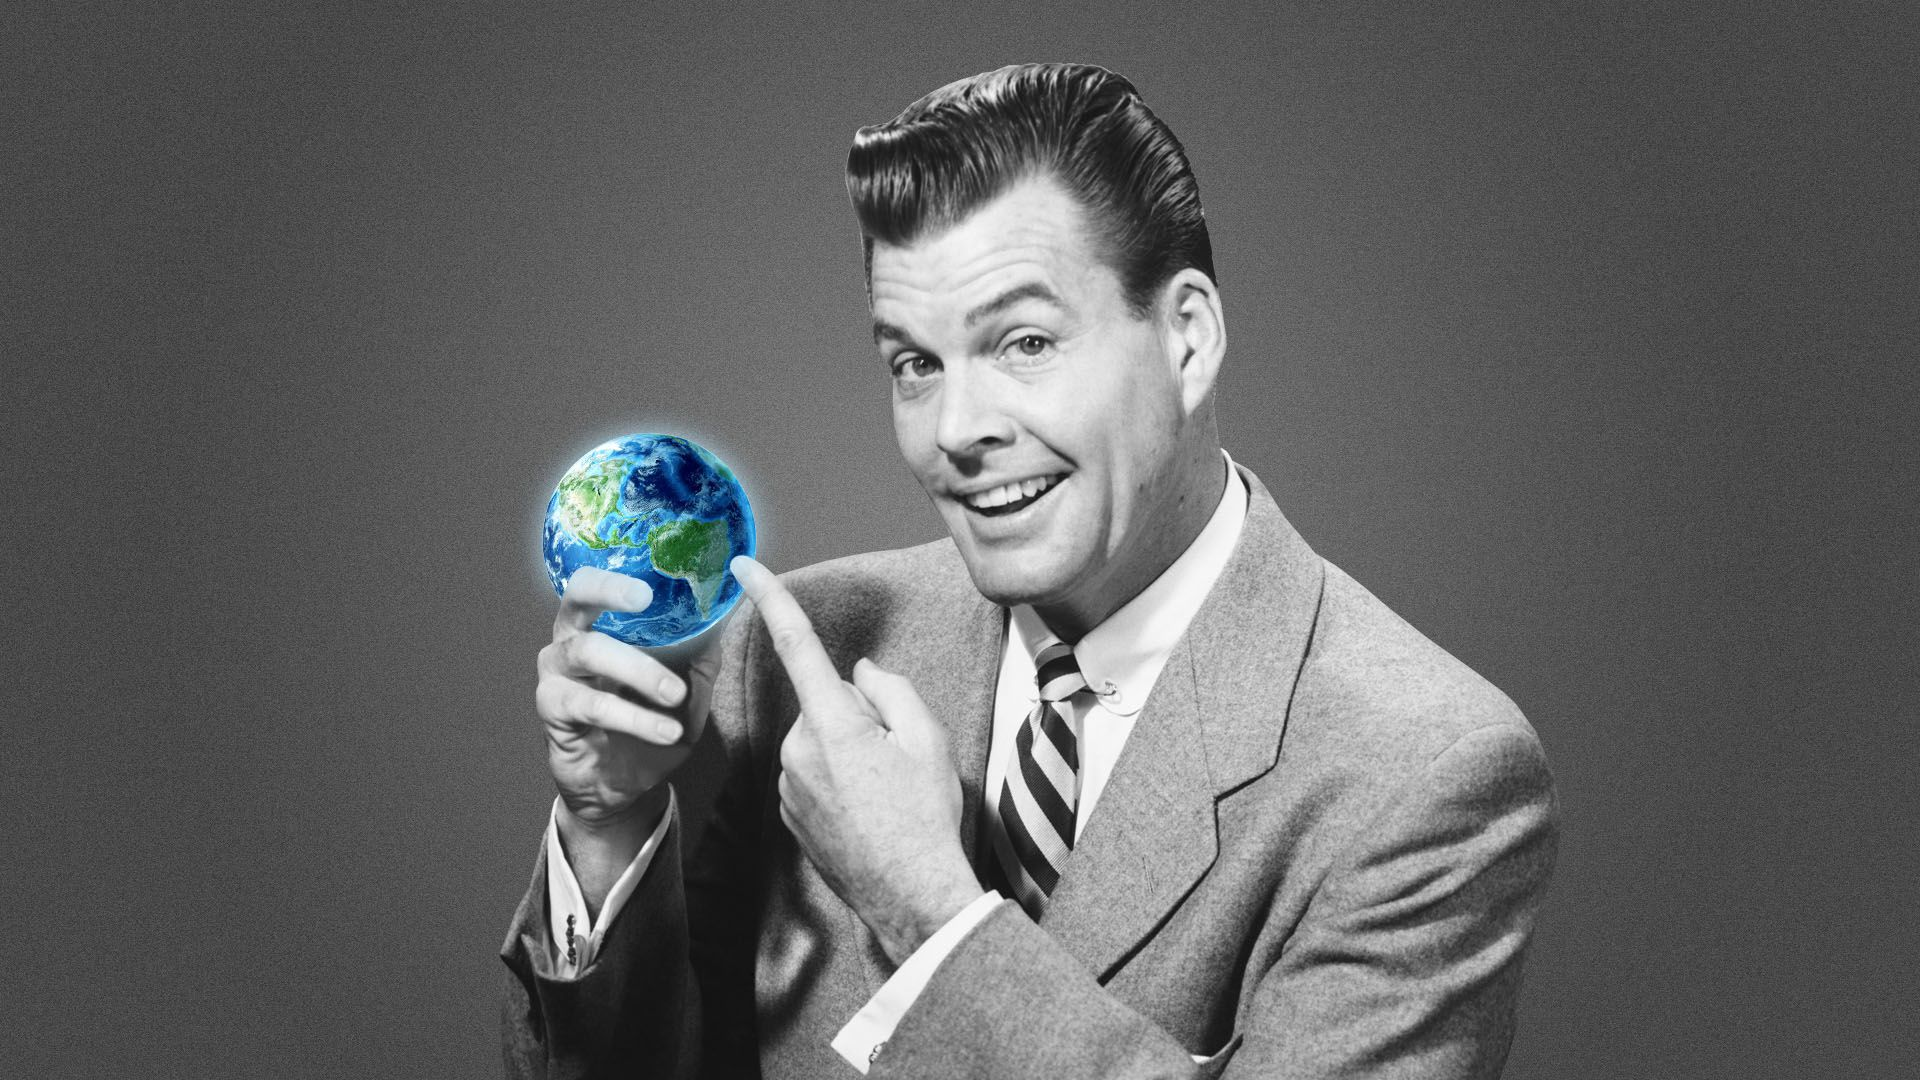 Man who looks like a corporate executive holding a small Earth-shaped ball and pointing to it.